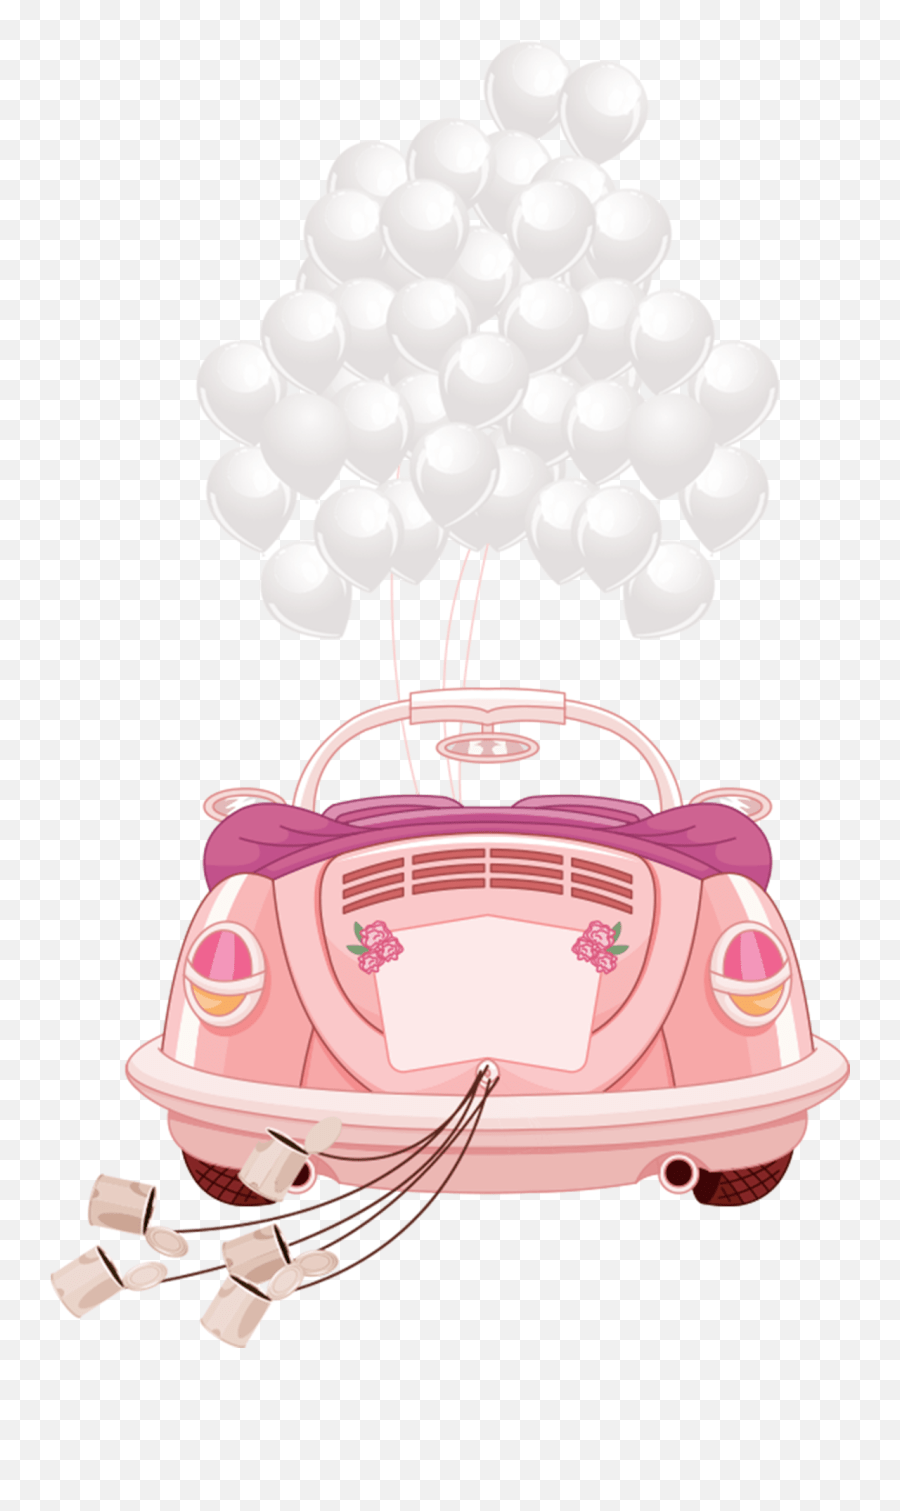 Car Cartoon Png : cartoon, Wedding, Image, Download, Cartoon, Transparent, Images, Pngaaa.com